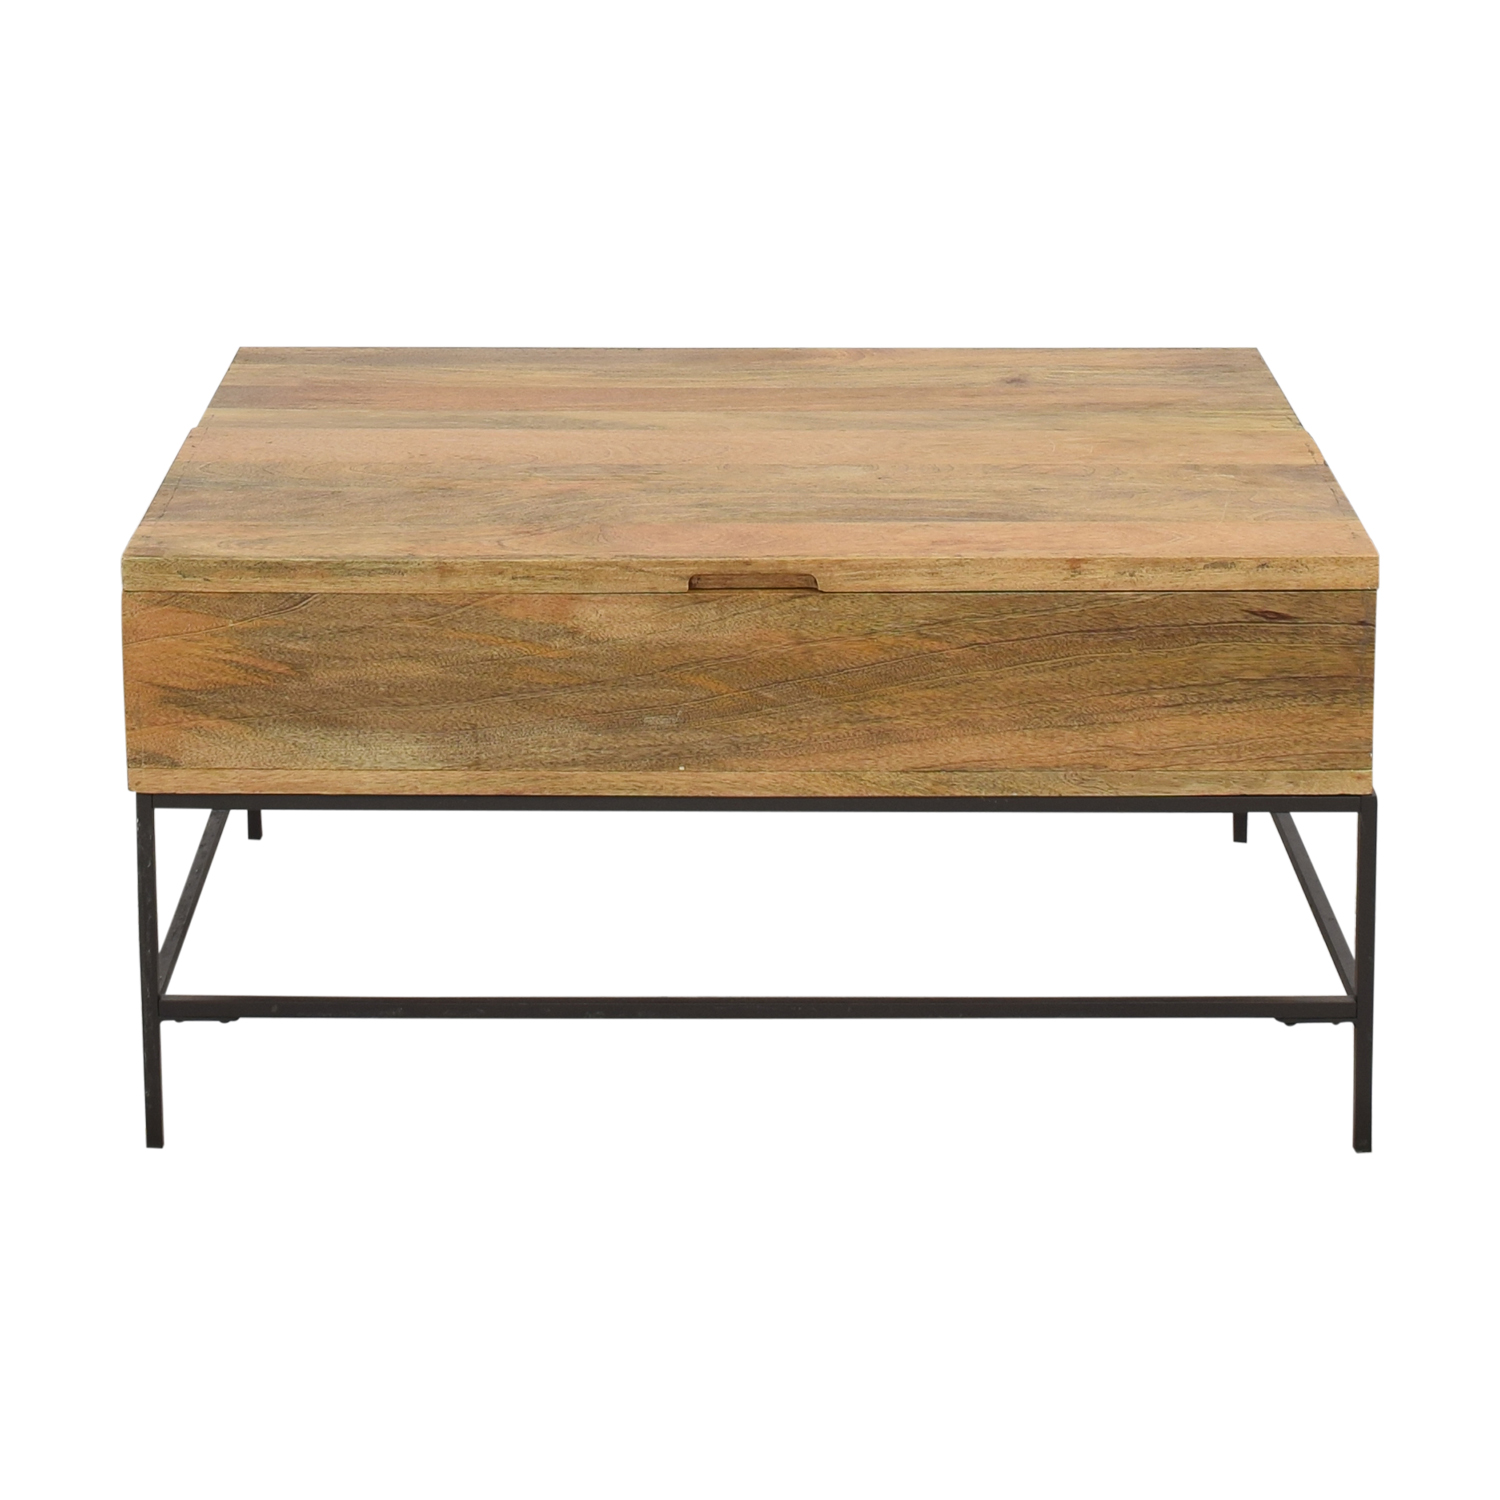 West Elm West Elm Industrial Storage Coffee Table Small Tables